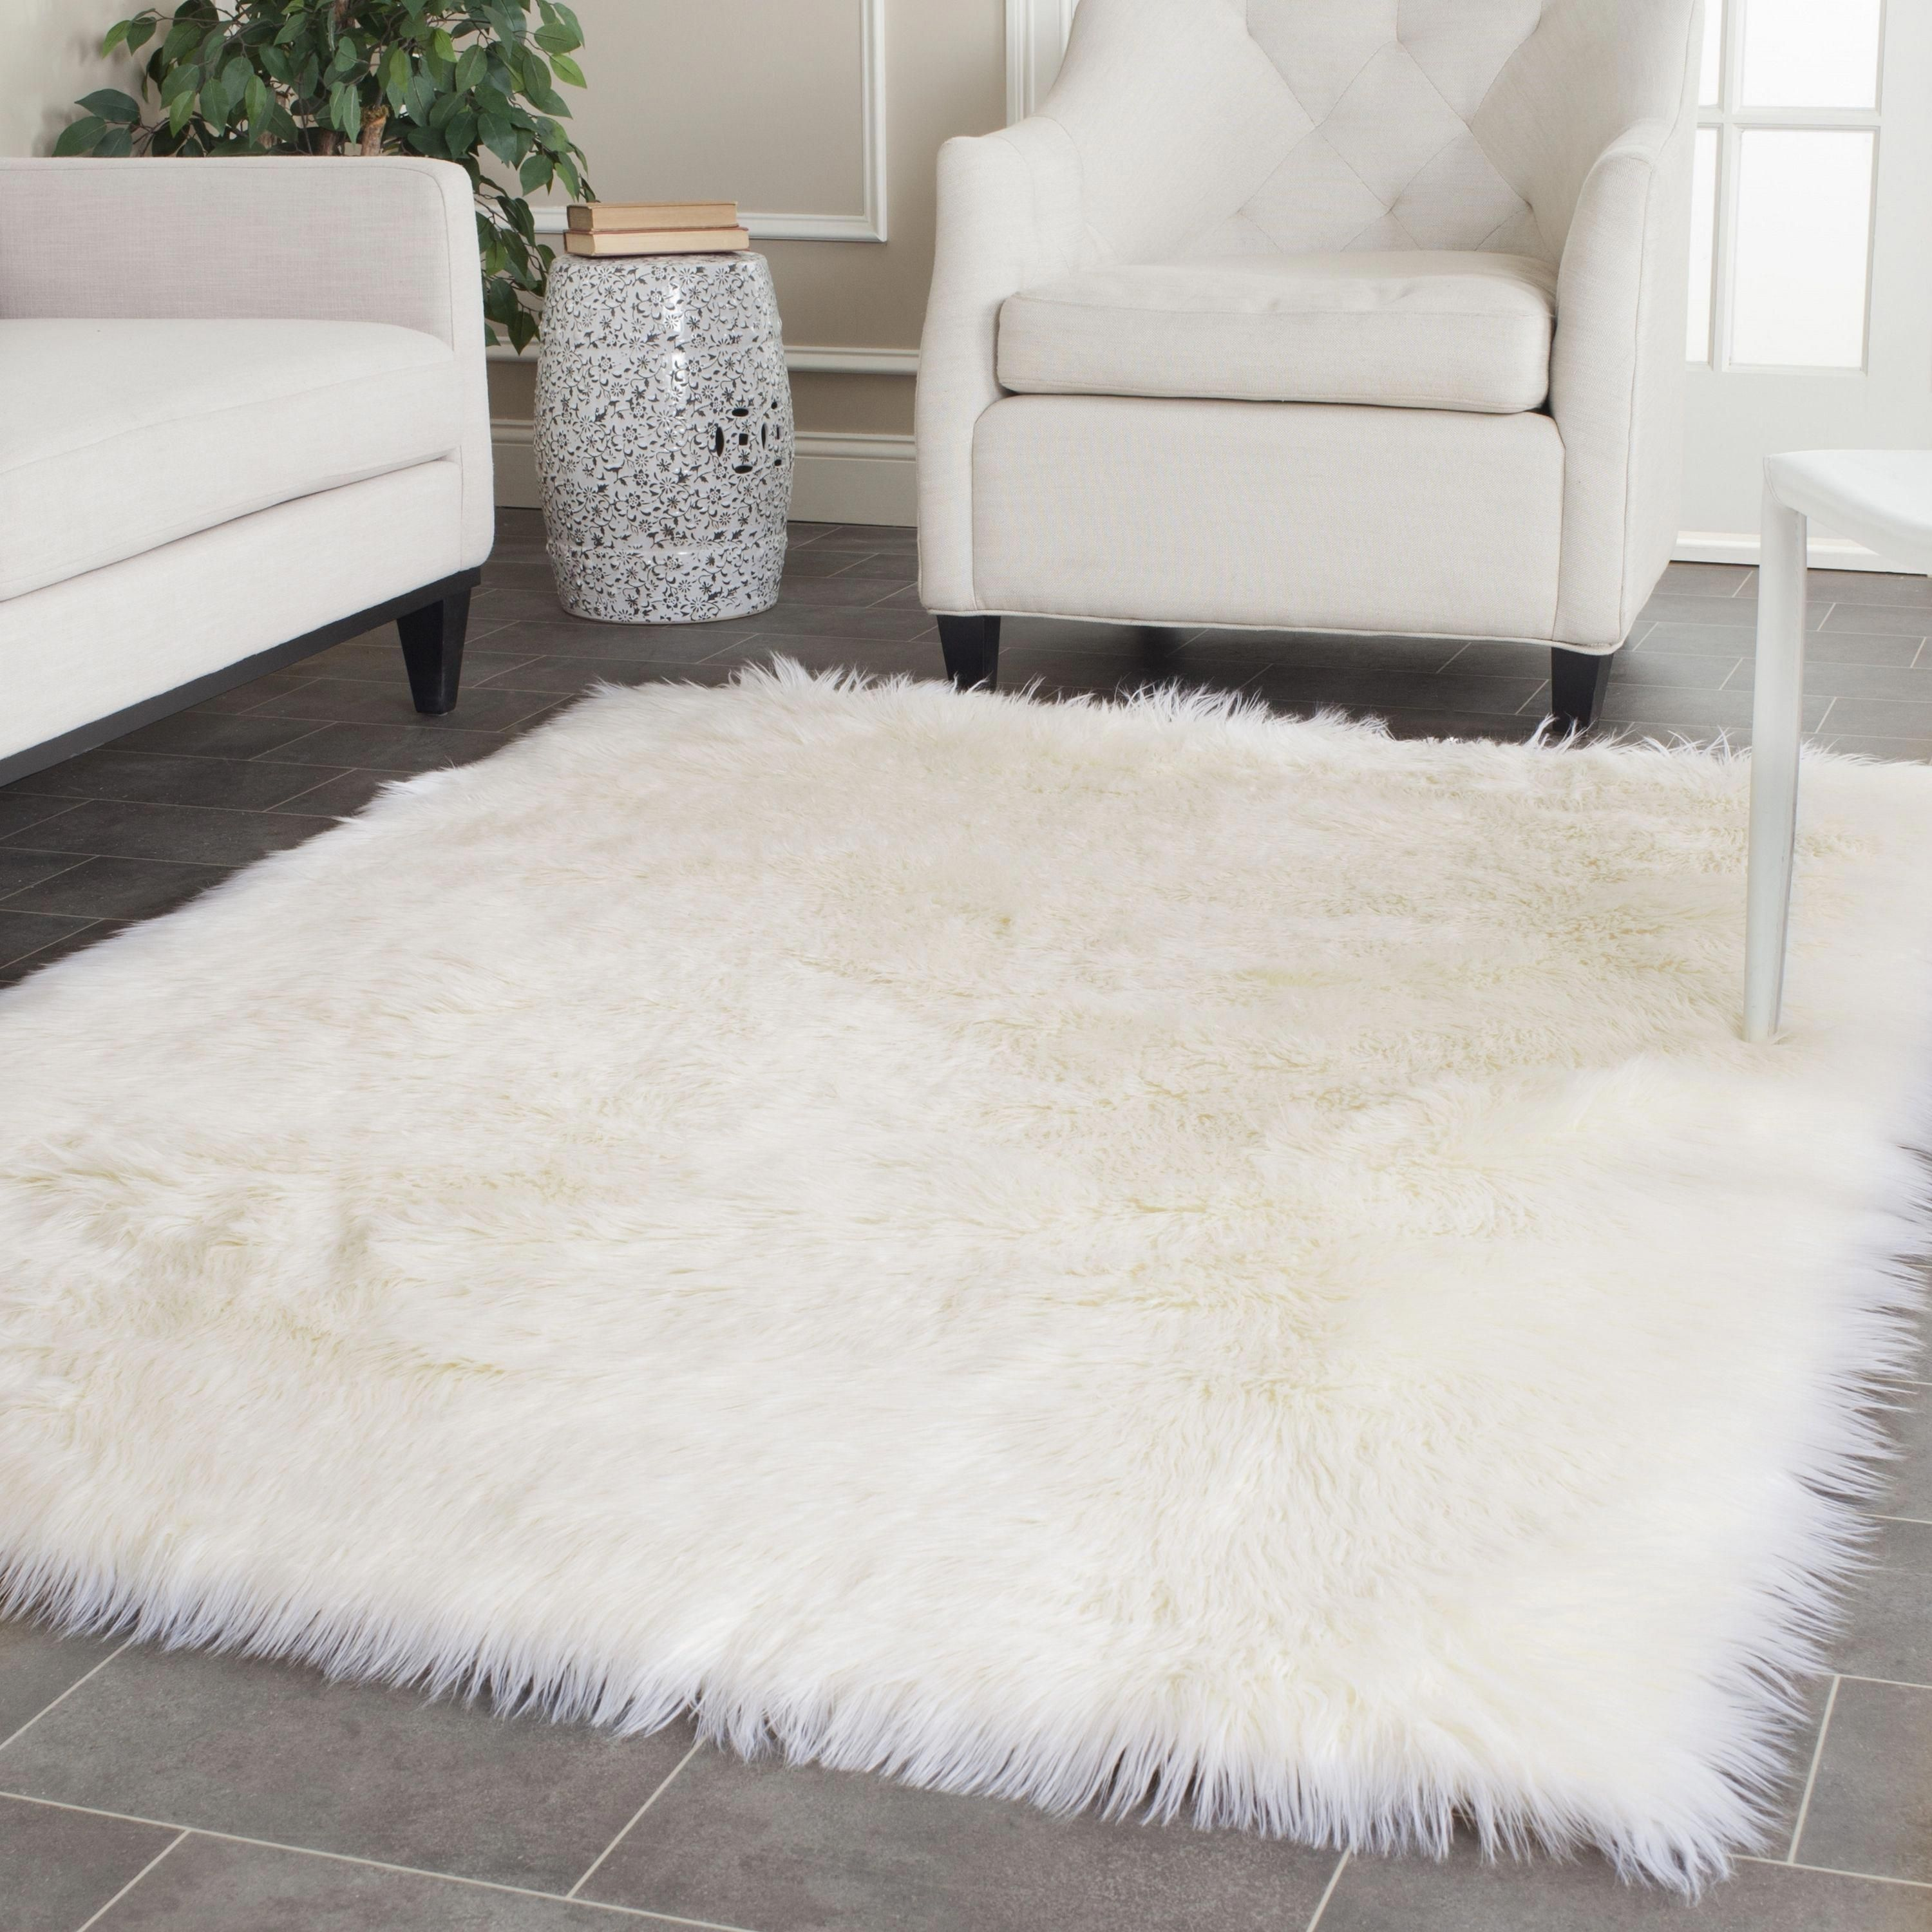 Cheap Stair Carpet Runners Uk Product Id 1951480237 White Carpet In 2019 Faux Sheepskin Rug Fluffy Rug Rugs